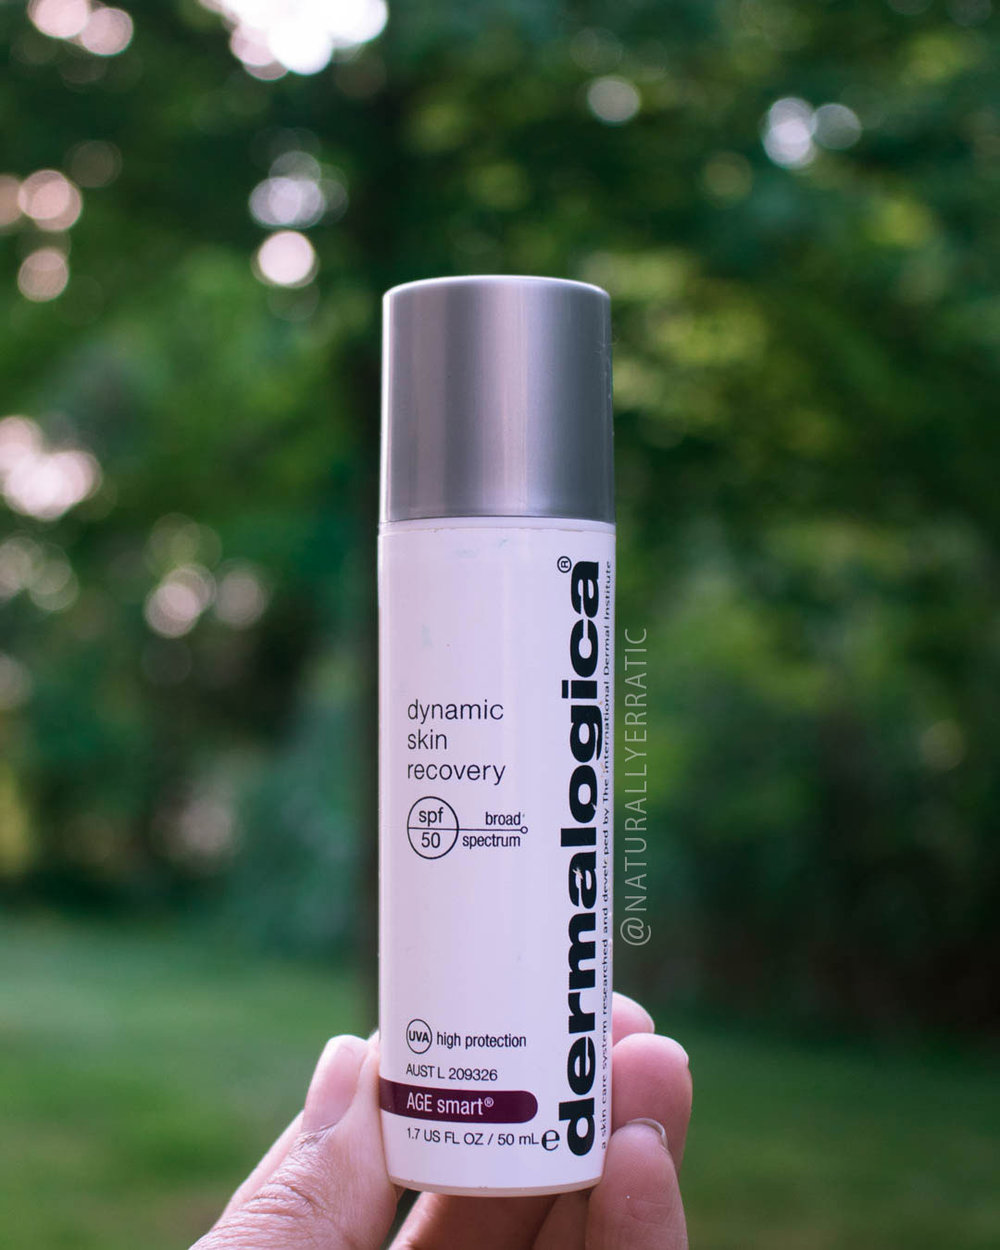 dermalogica-dynamic-skin-recovery-review.jpg